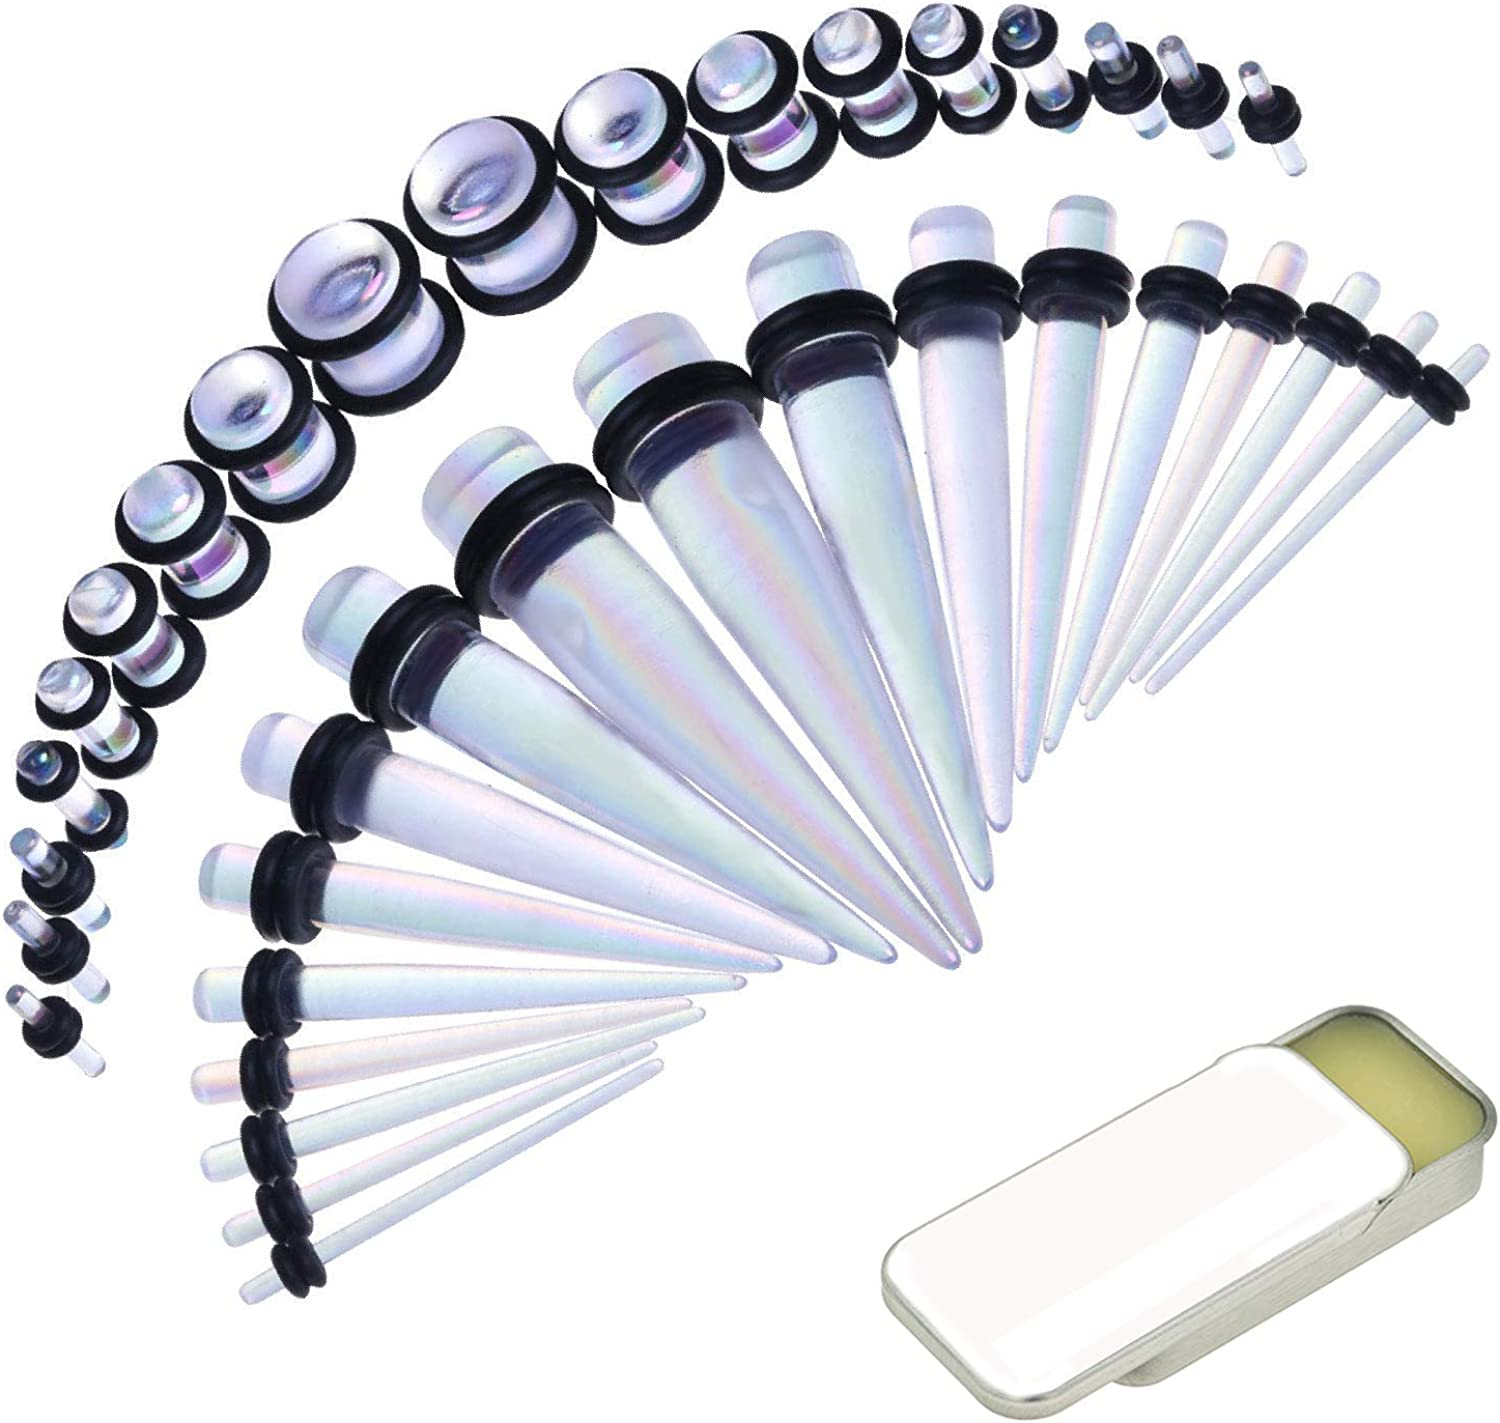 BodyJ4You 36PC Gauges Kit Ear Stretching 14G-00G Steel Tapers Marble Plugs Set